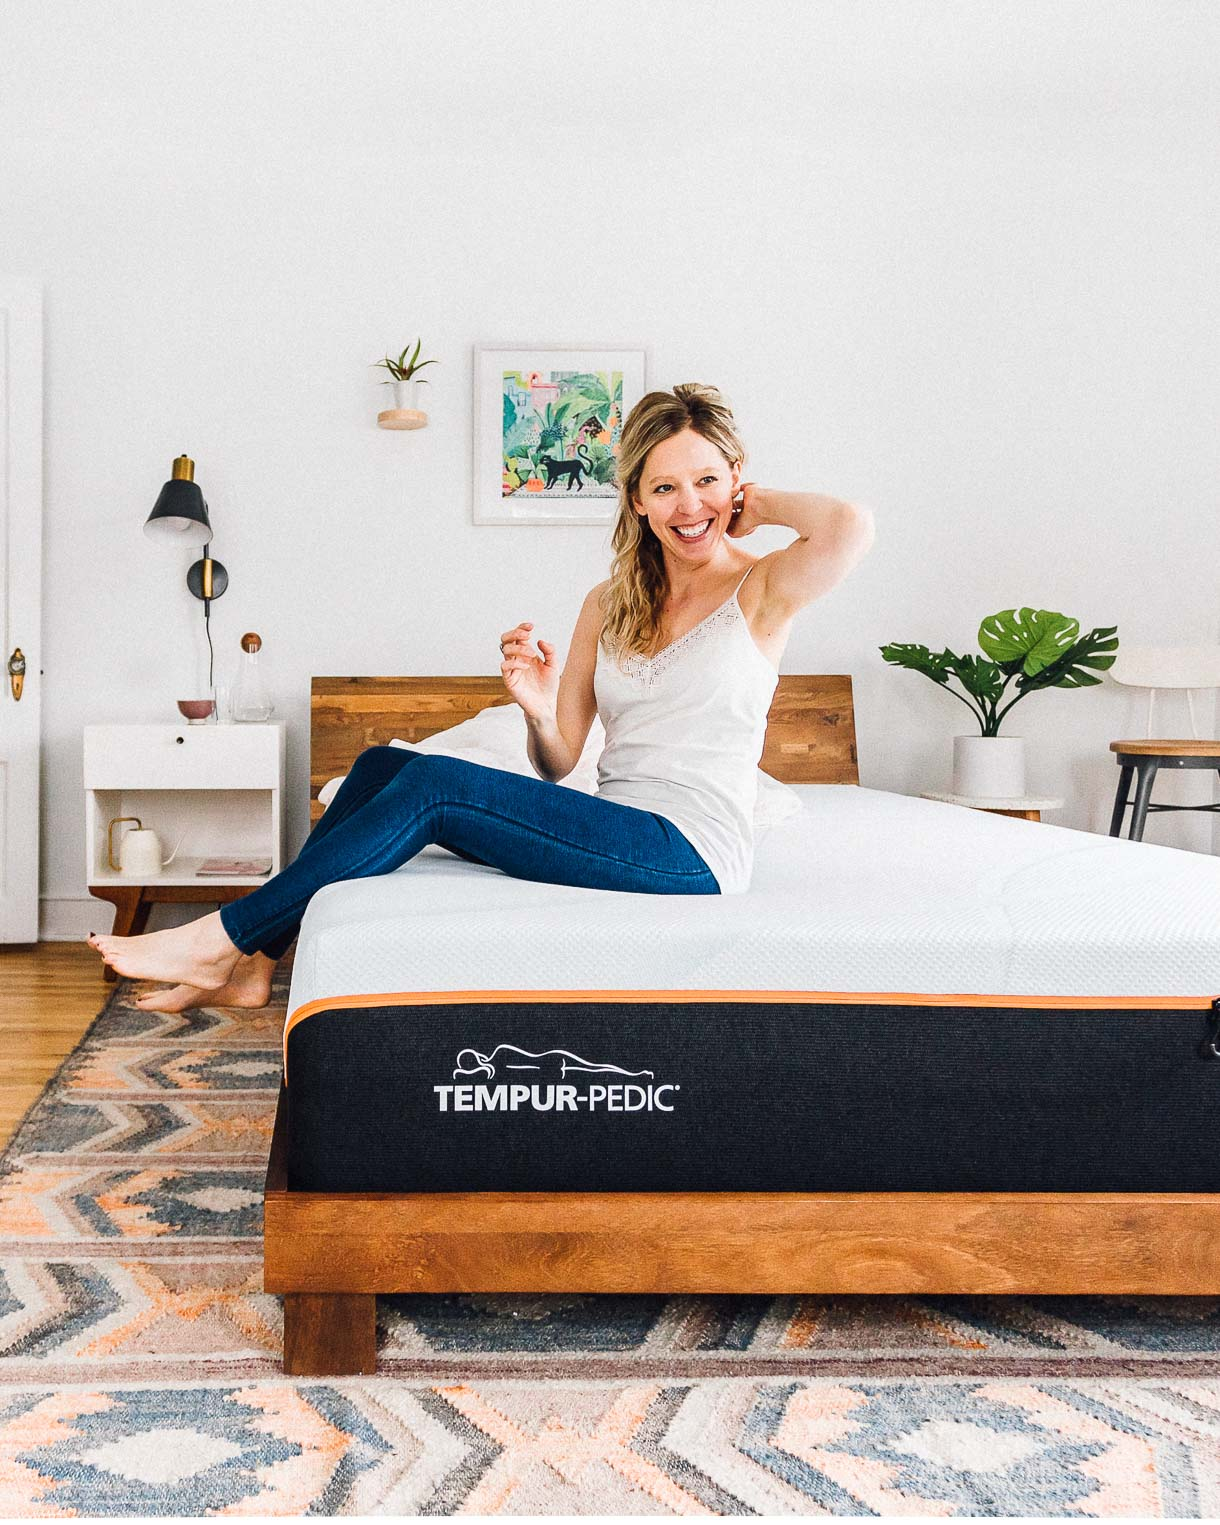 Tempurpedic Luxe Adapt Mattress